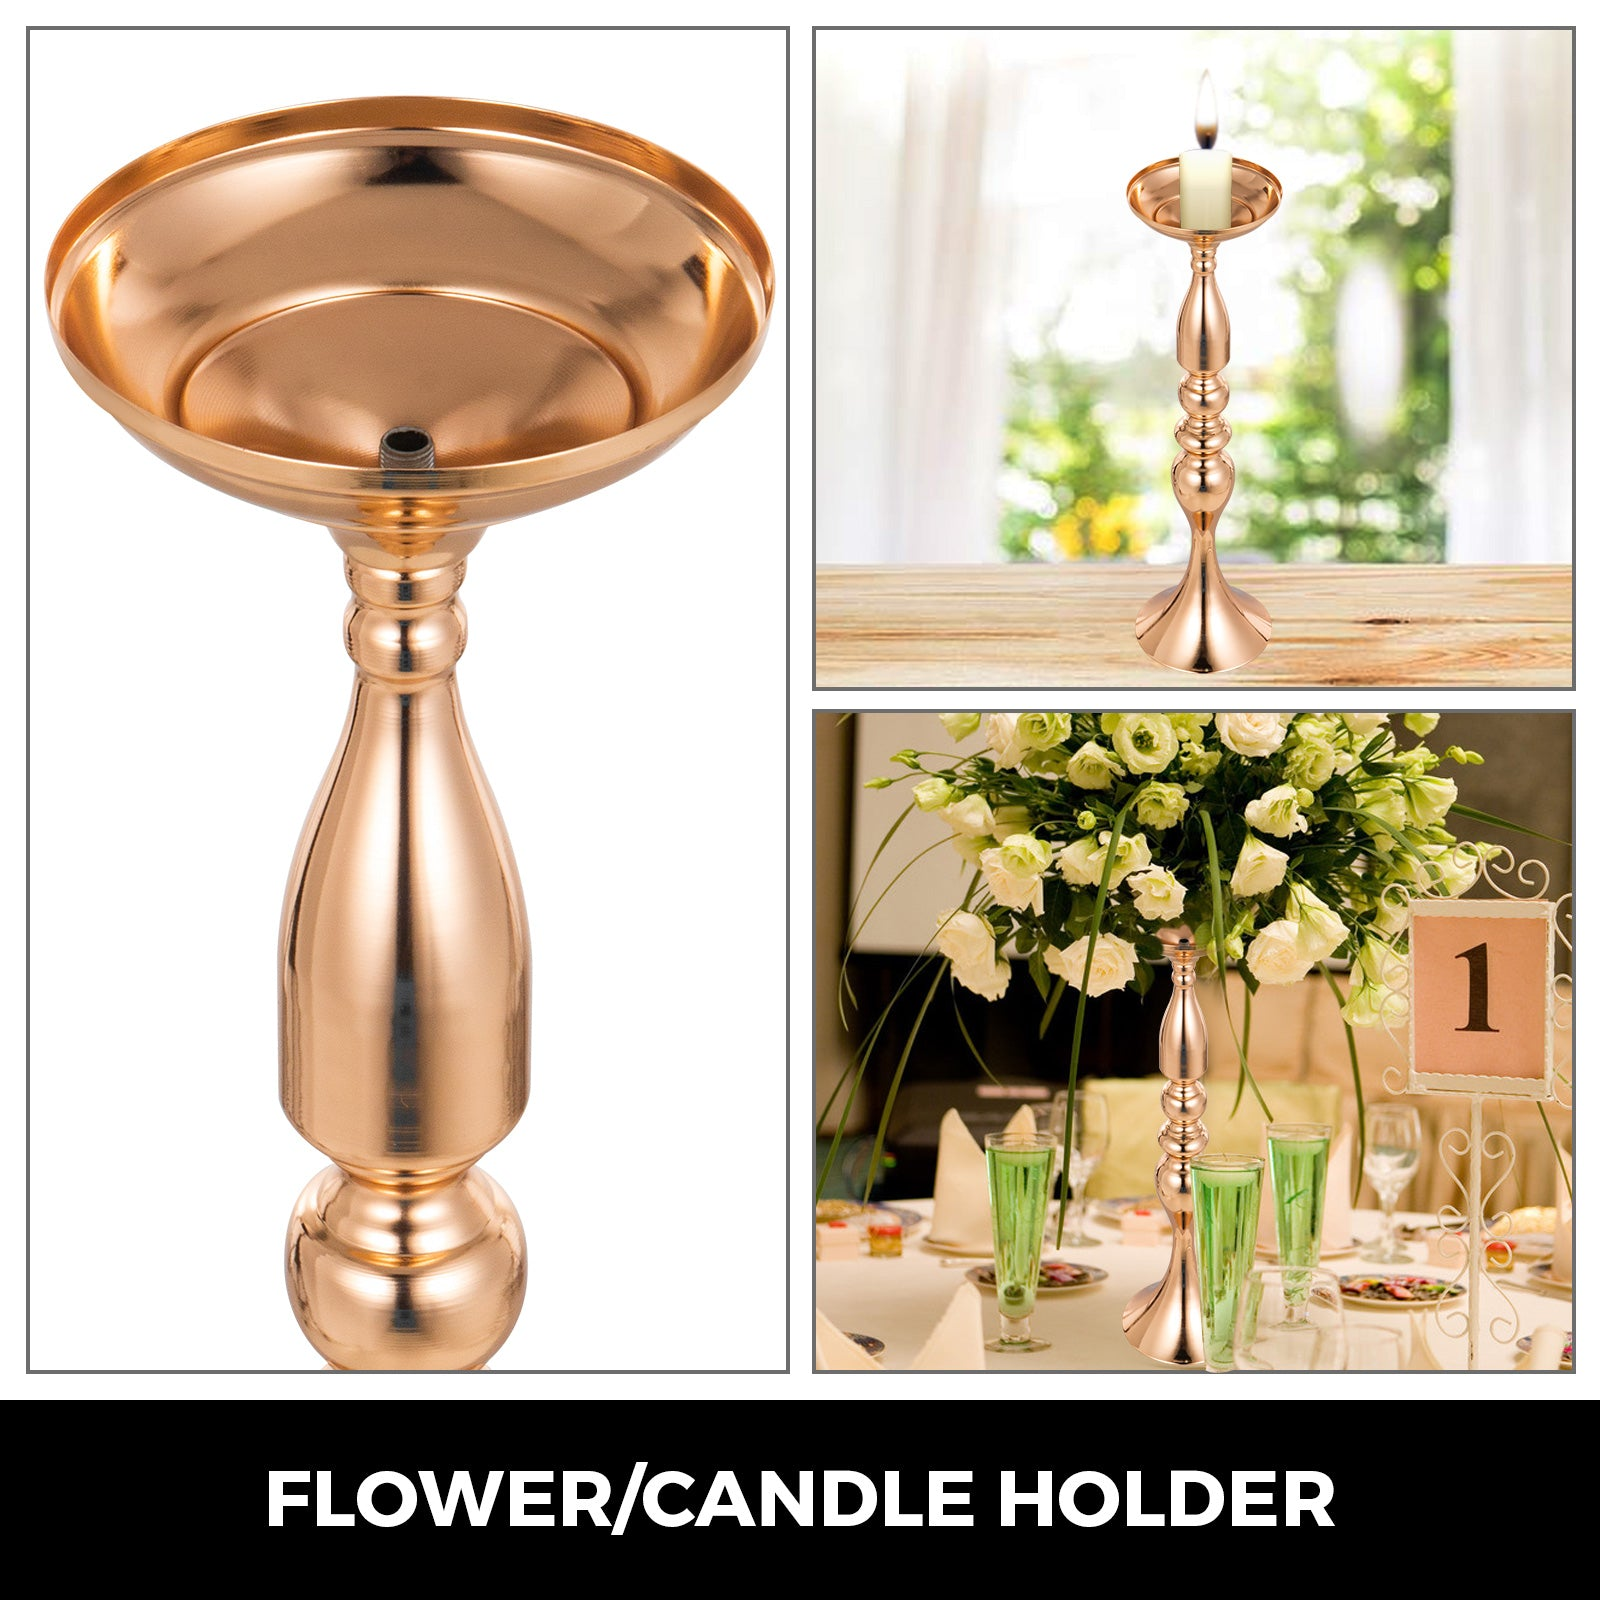 "Gold Centerpieces For Wedding Candle Holder 11pcs Flower Rack Vase 19.6"" Height"